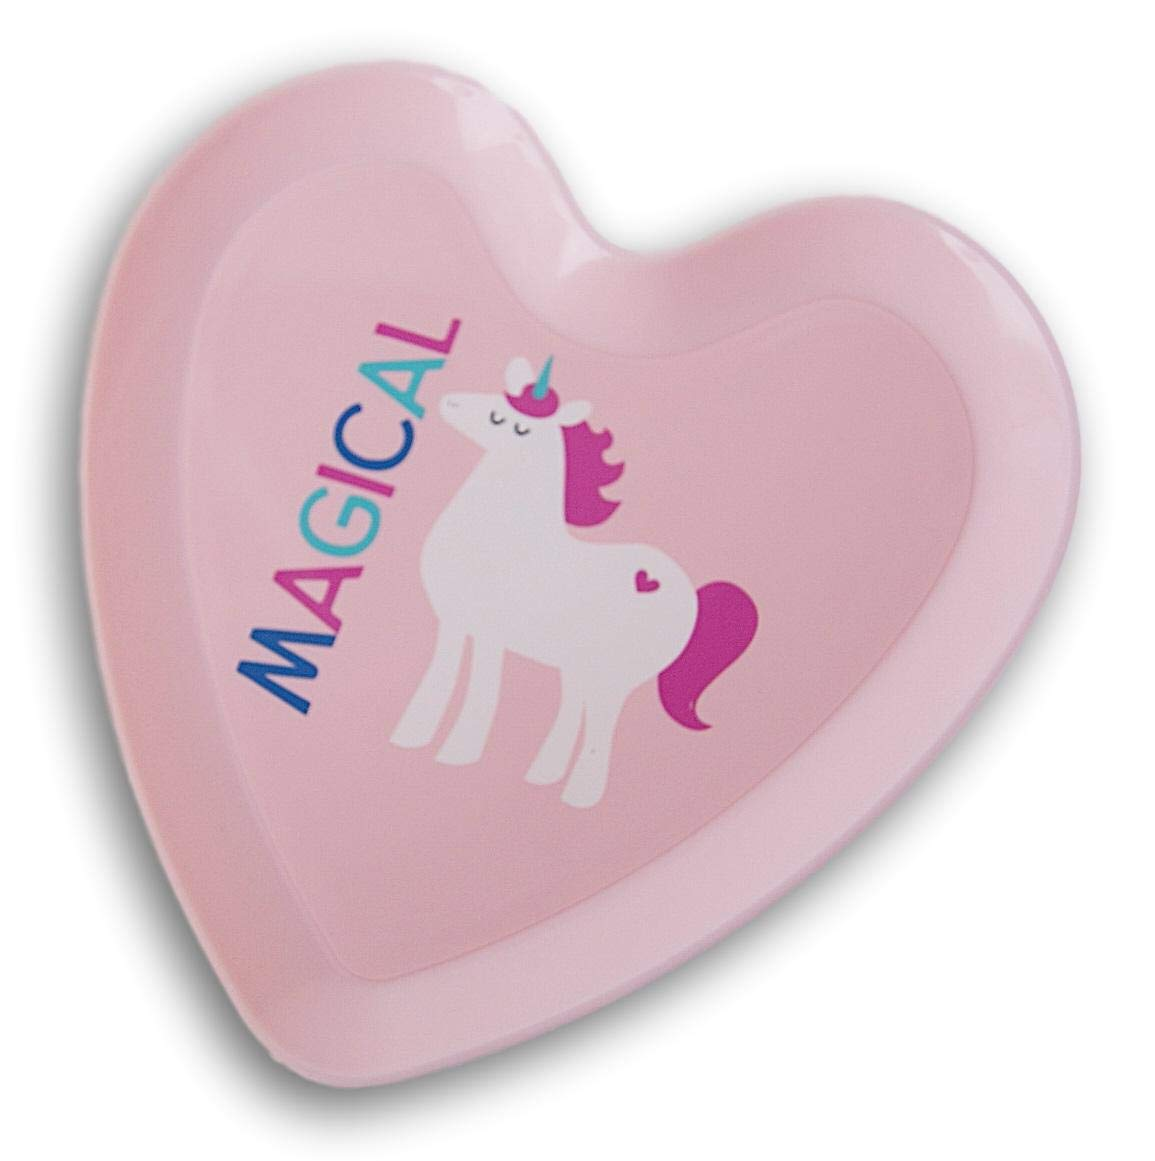 Magical Heart Shaped Unicorn Patterned Kids Plate 9 x 9 Inches